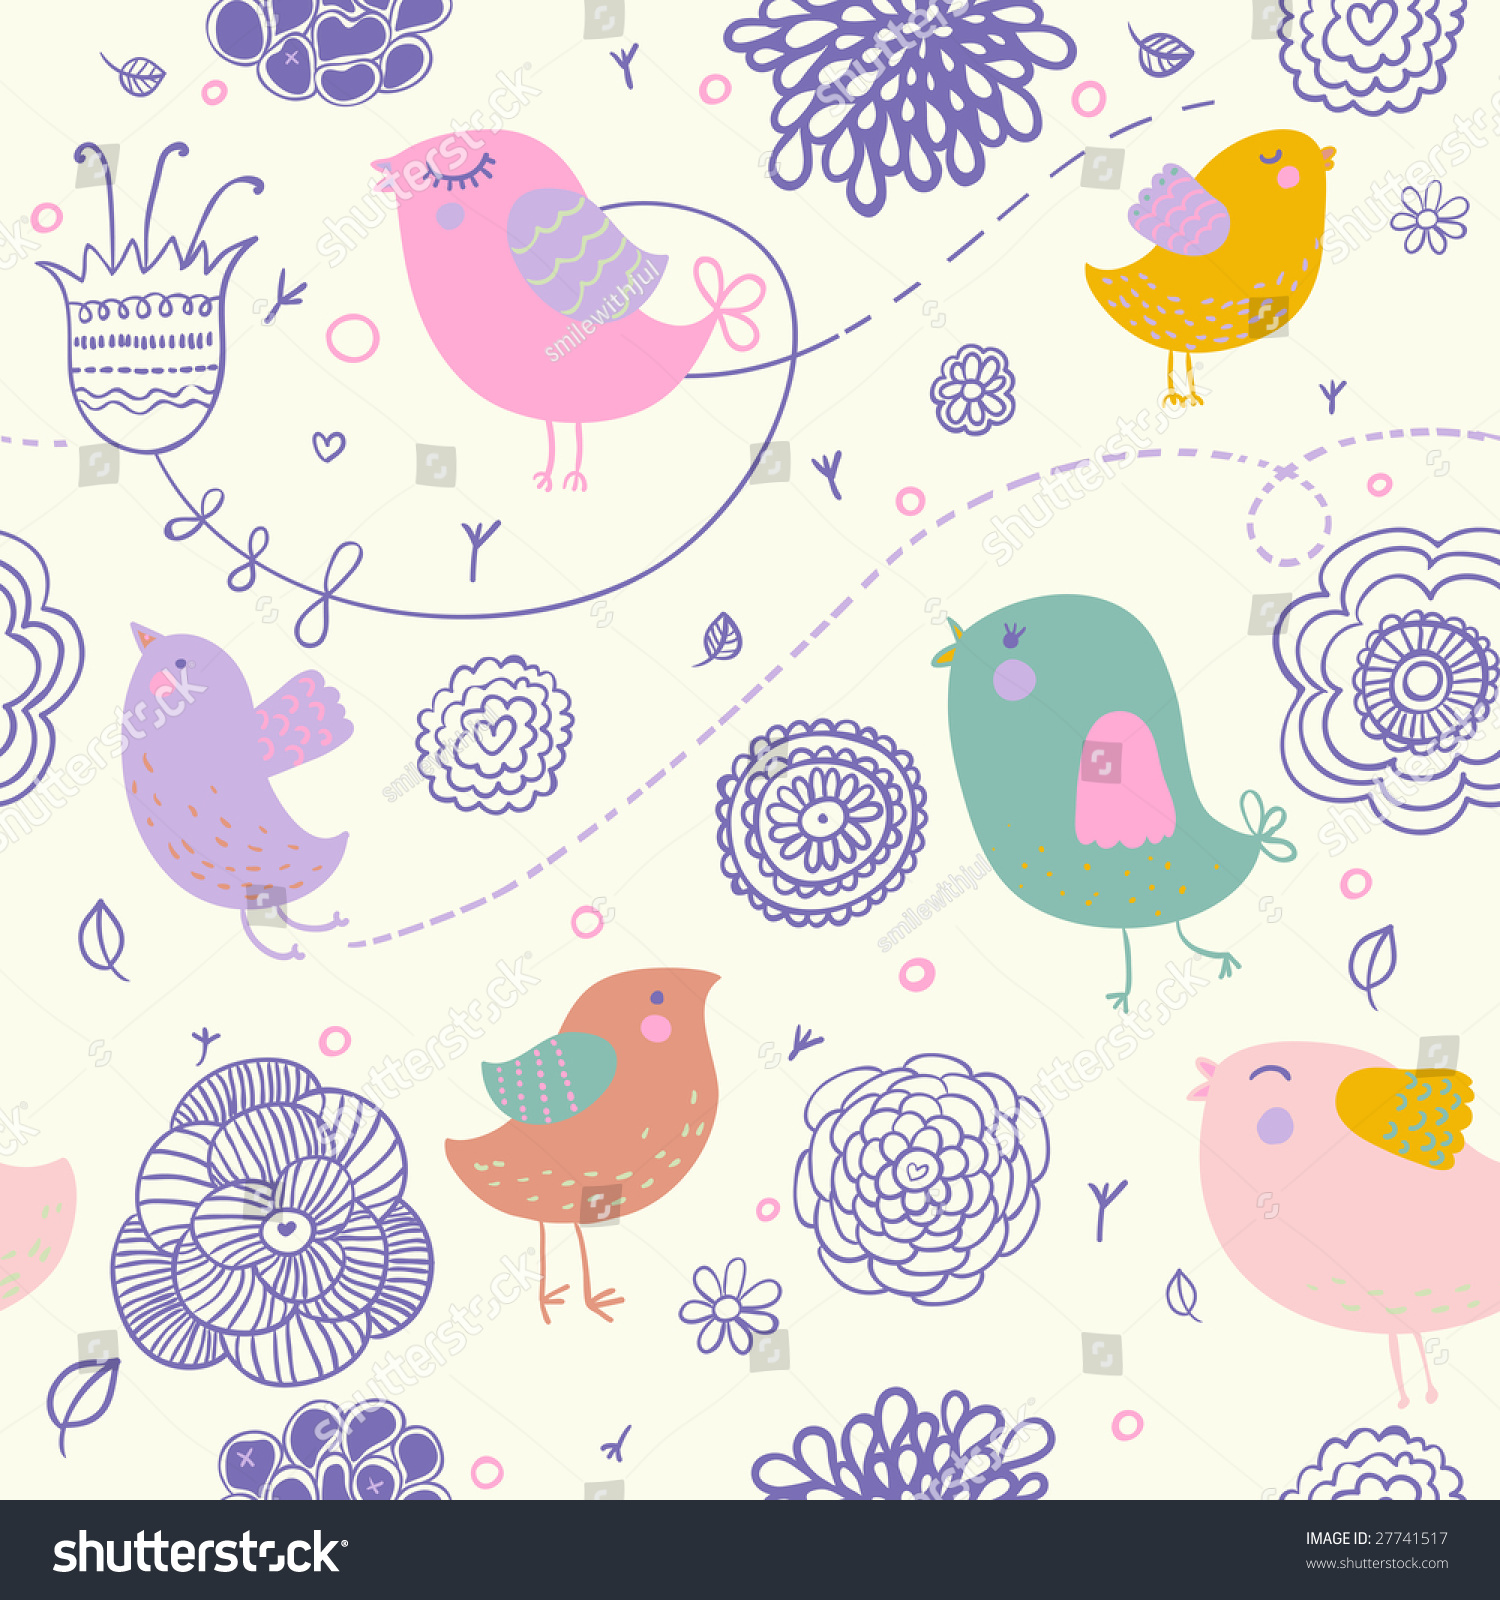 Cute spring floral pattern nice backgrounds stock illustration cute spring floral pattern for nice backgrounds this illustration in vector in my portfolio voltagebd Image collections